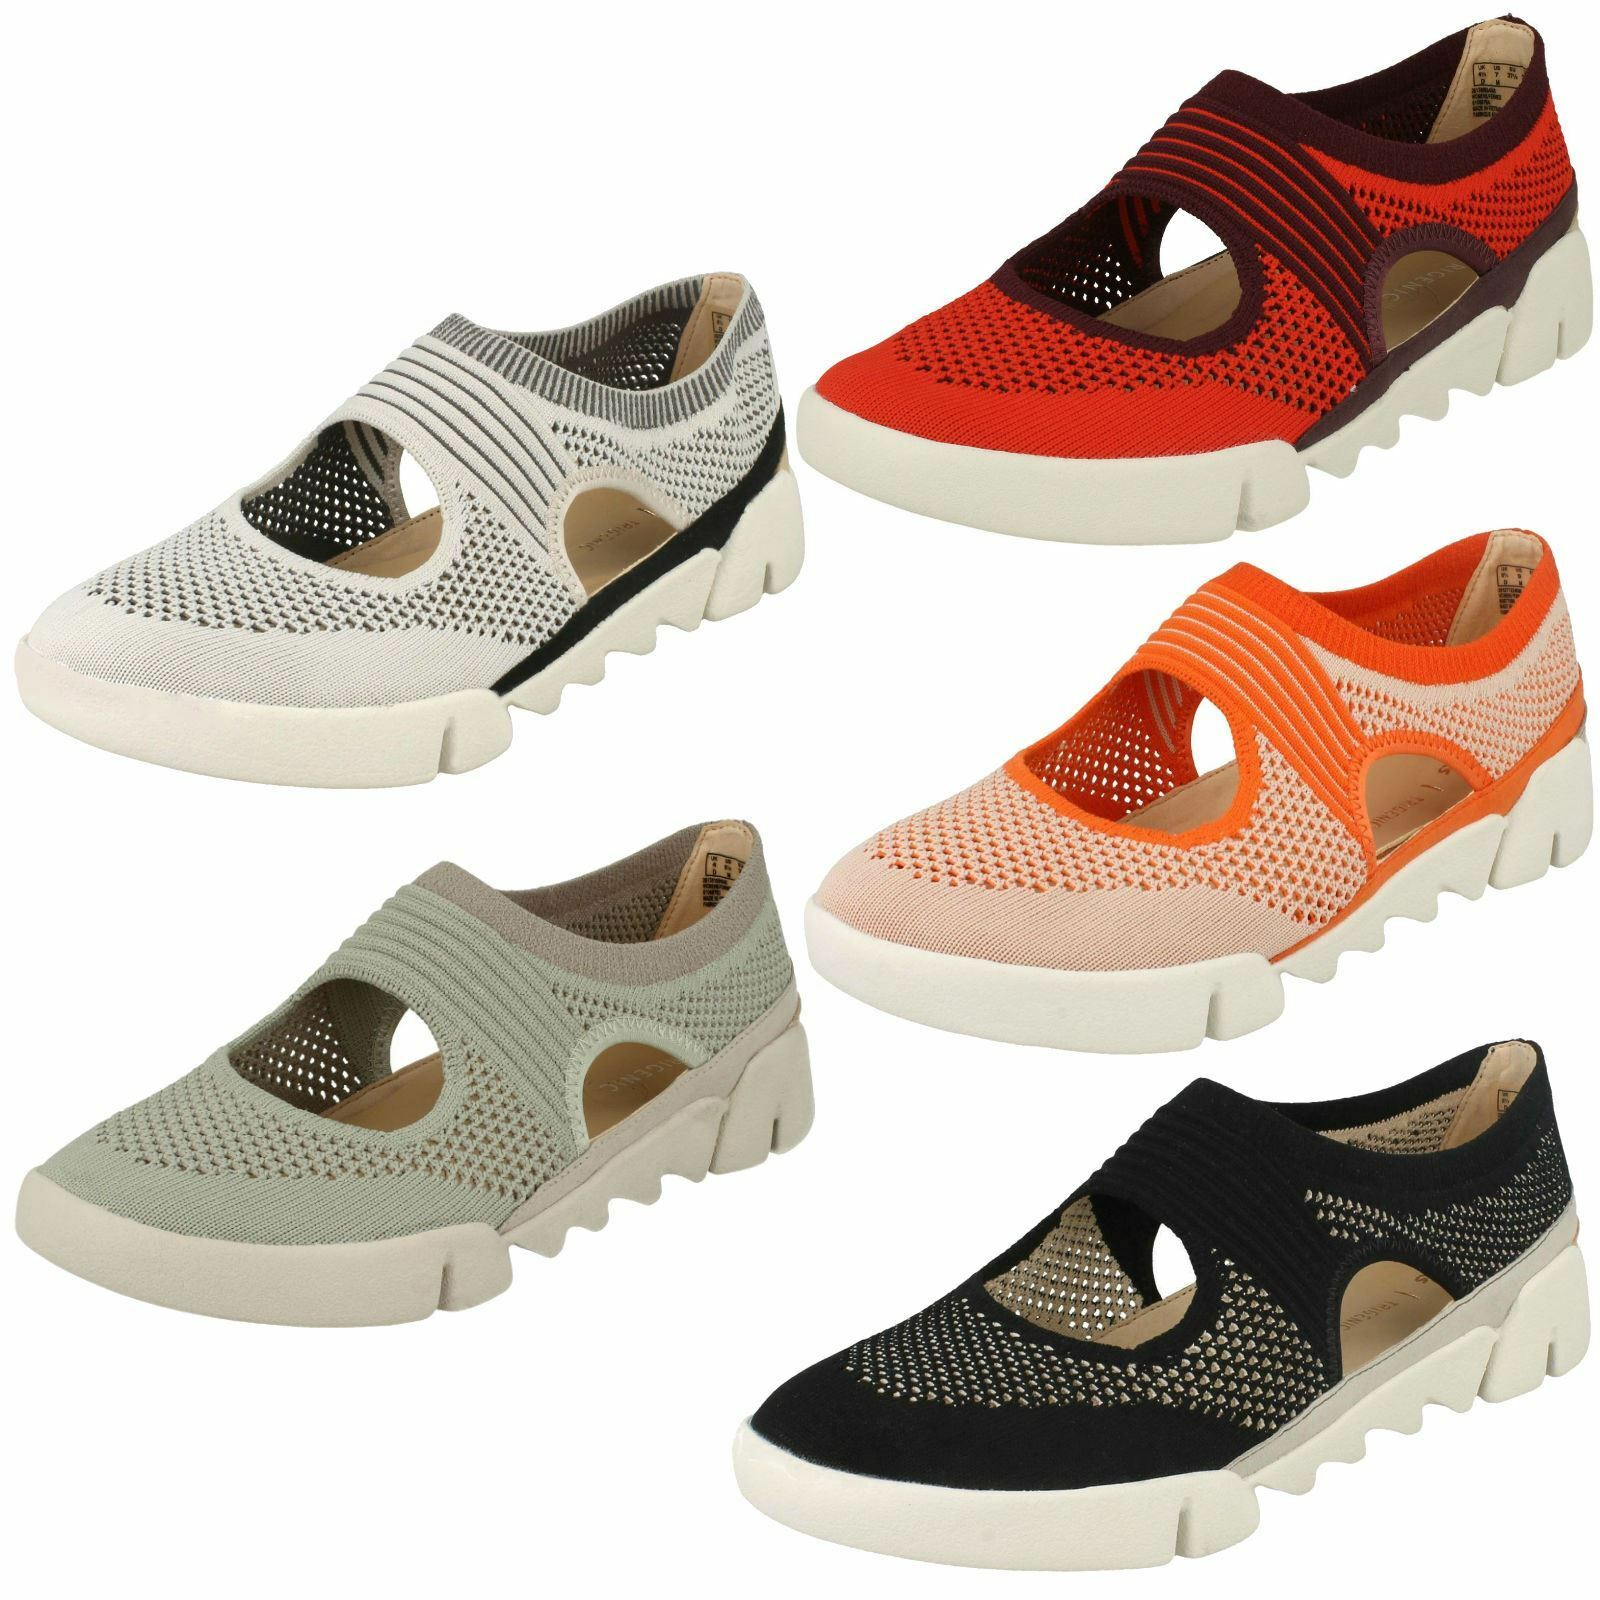 Descuento de la marca Descuento por tiempo limitado Ladies Clarks Casual Cut-Out Detailed Shoes Tri Blossom